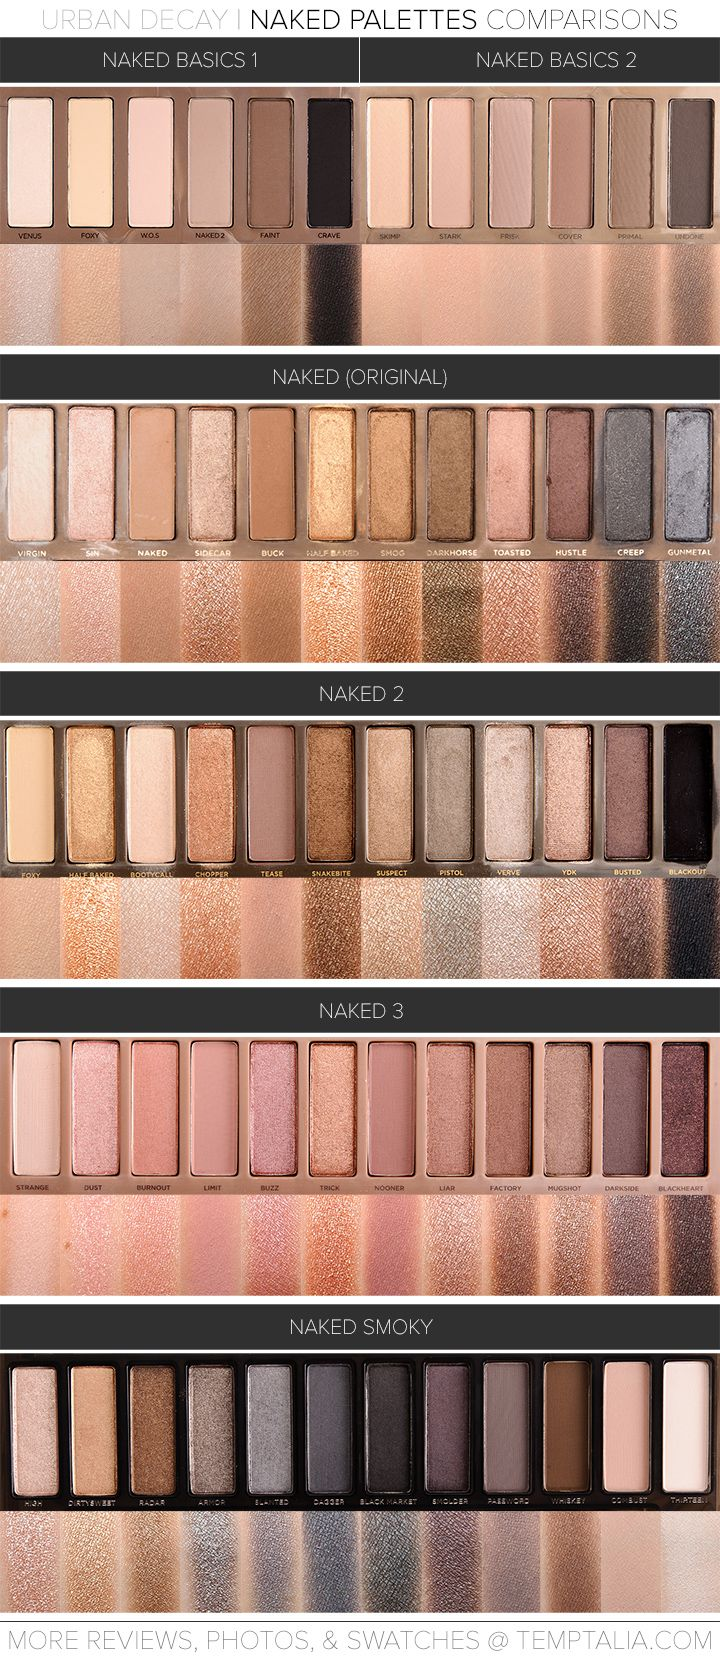 Urban Decay Naked Palettes Mega Comparison Photos & Swatches